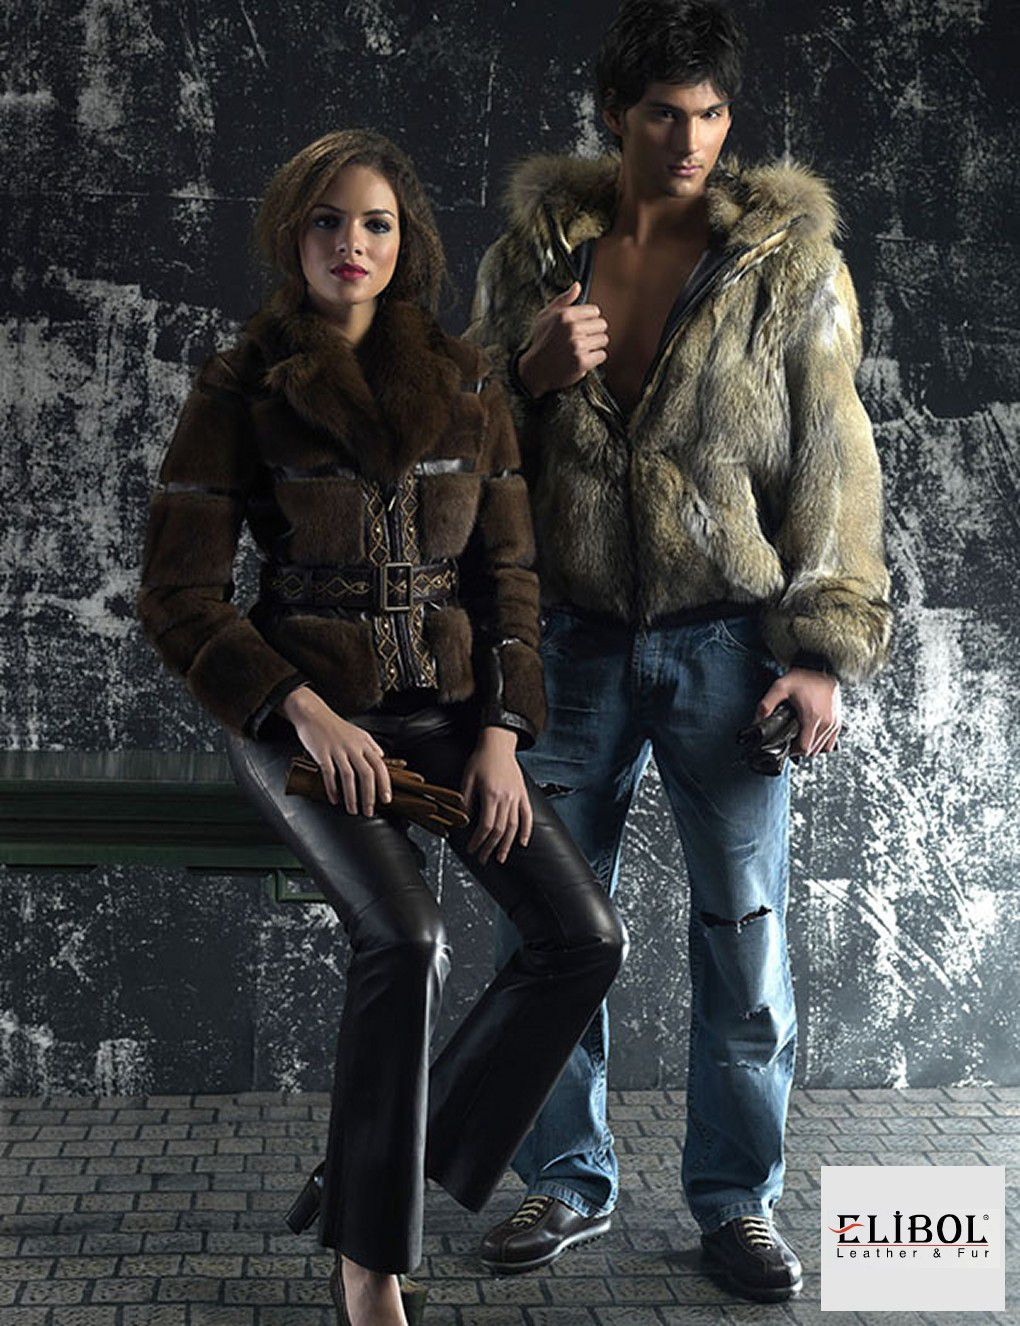 Collection Leather Clothing 2014 - ELIBOL LEATHER & FUR